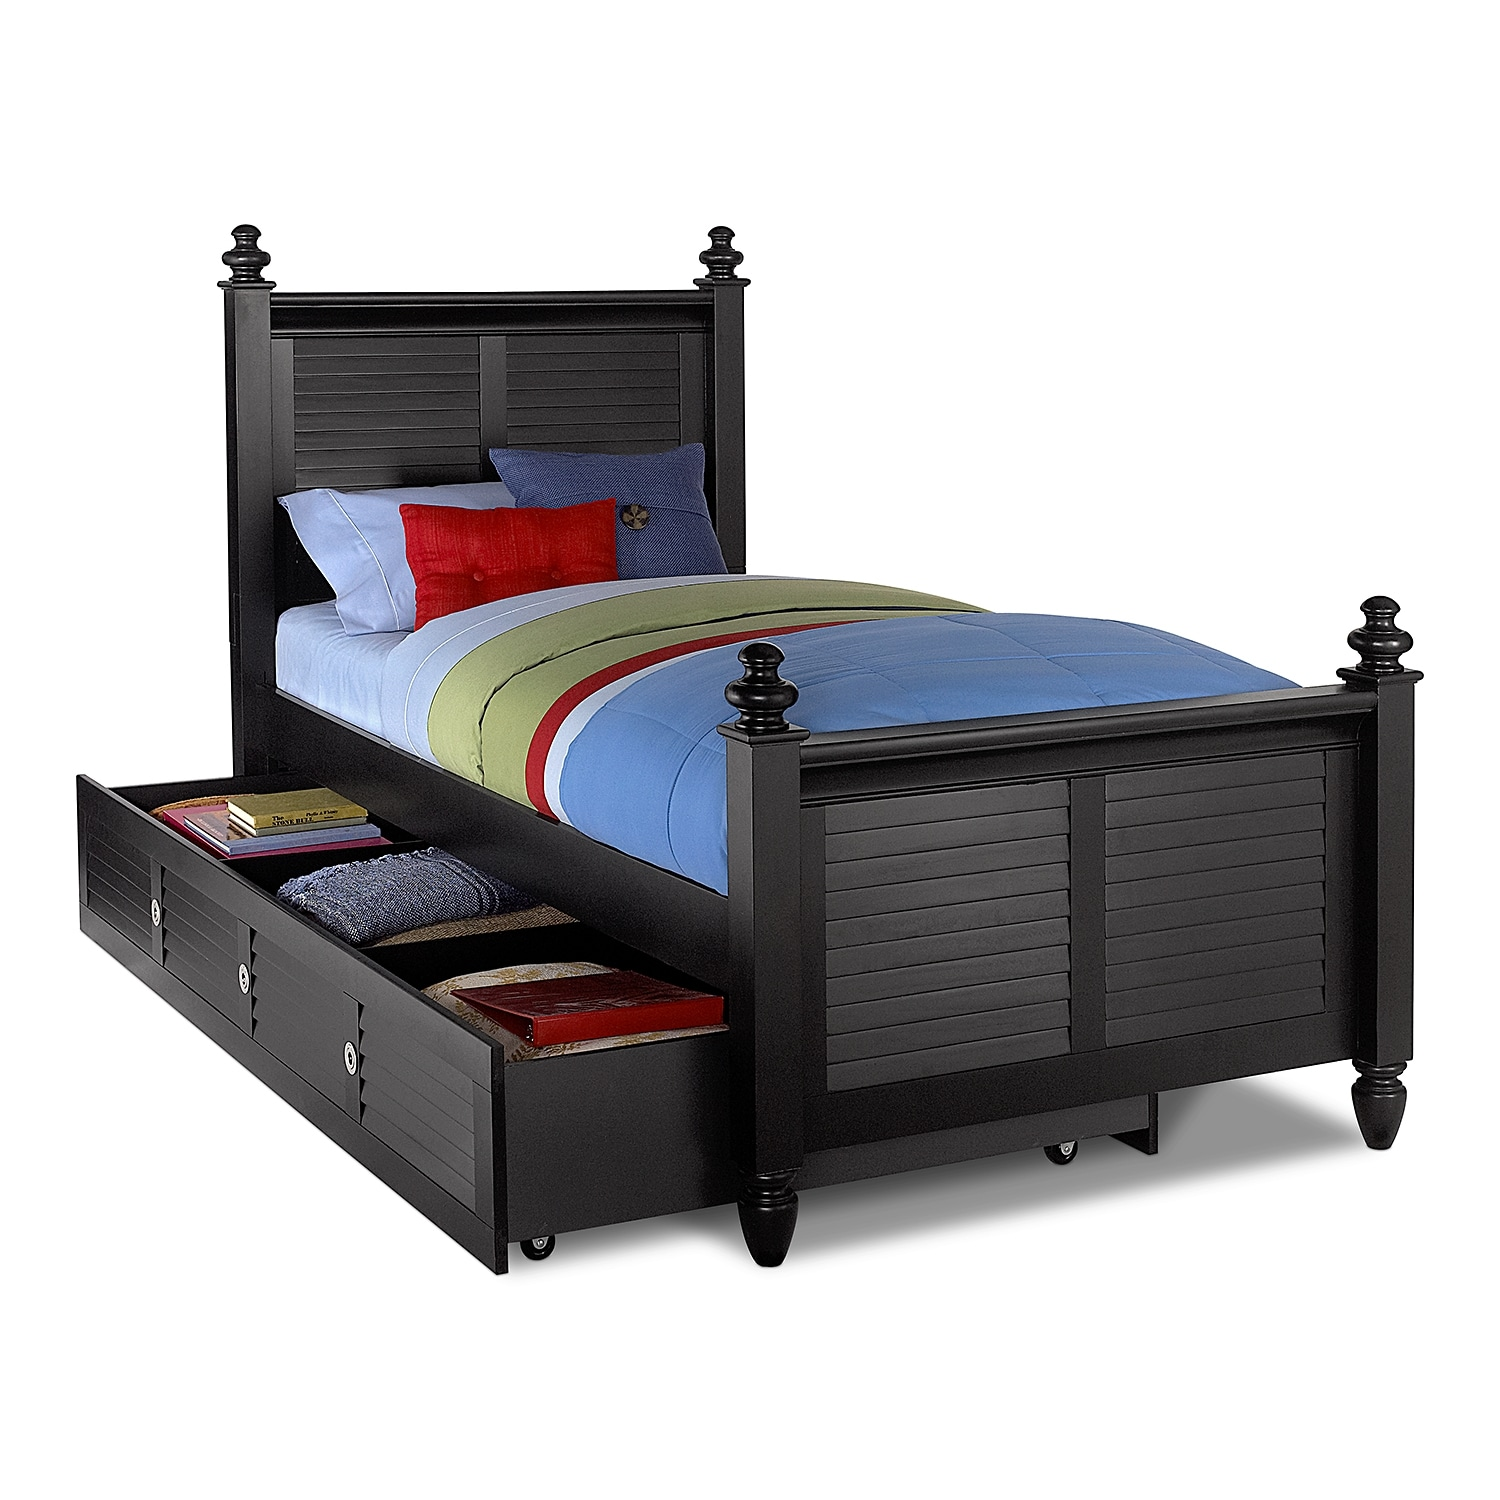 Seaside twin bed with trundle black american signature for Furniture and beds